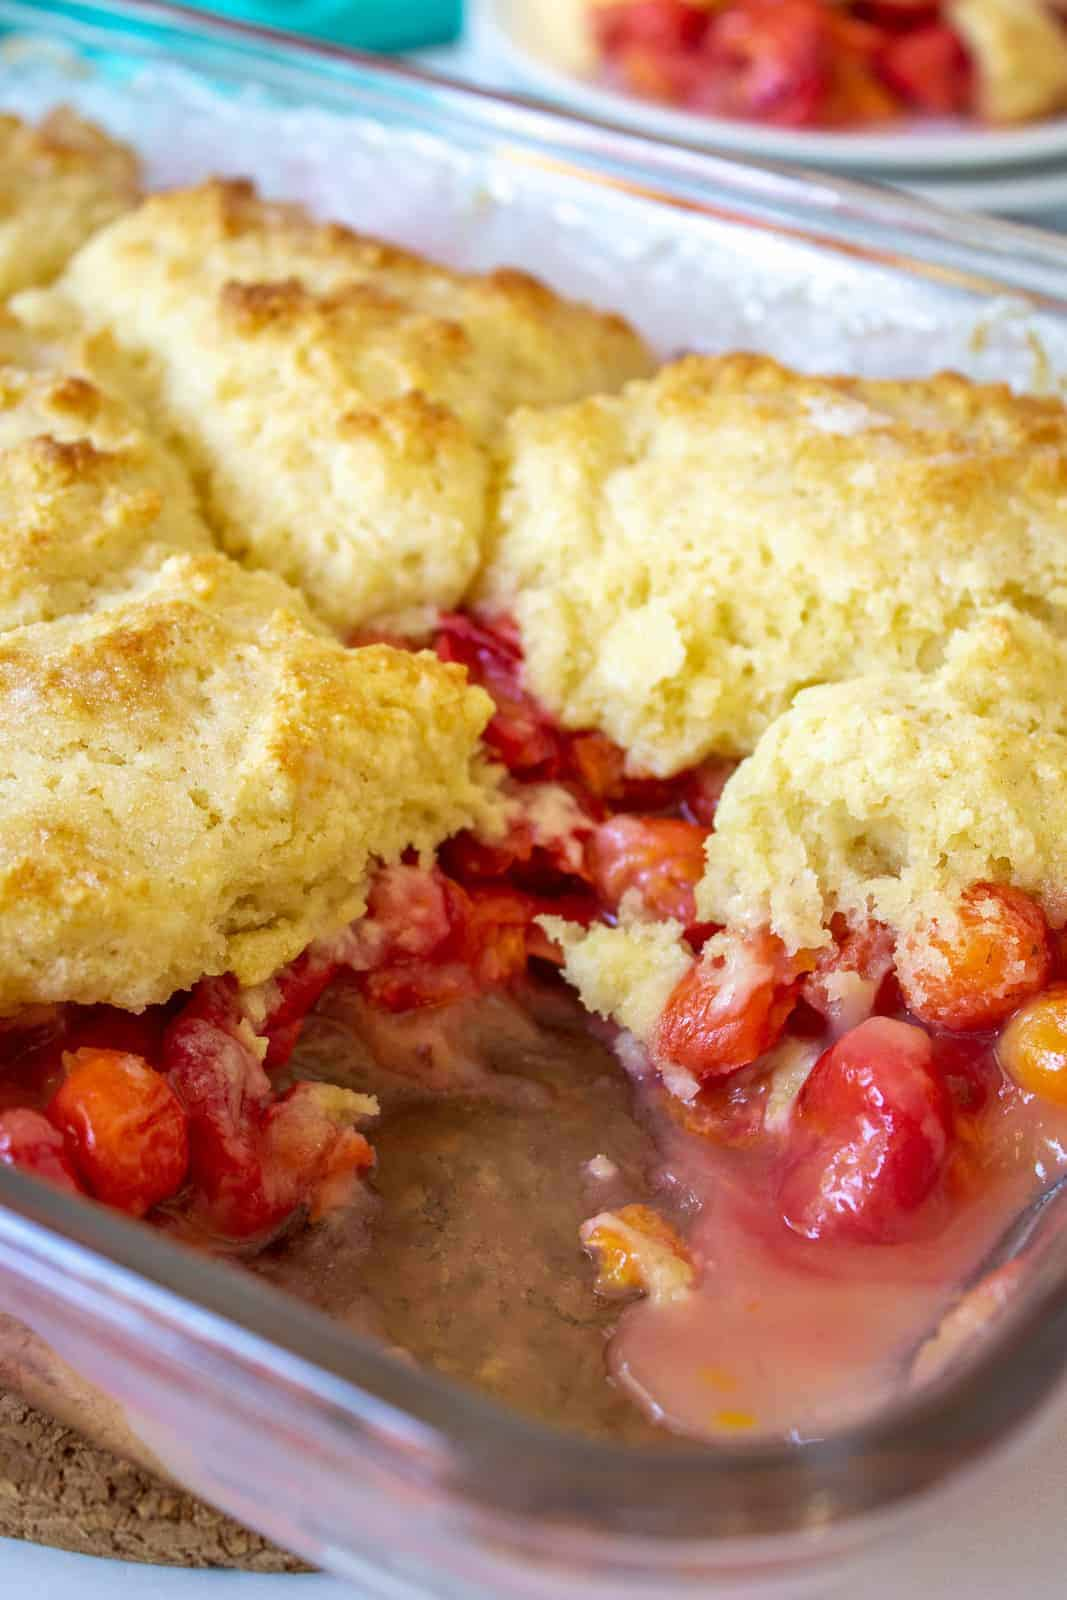 Cherry cobbler with a biscuit topping.